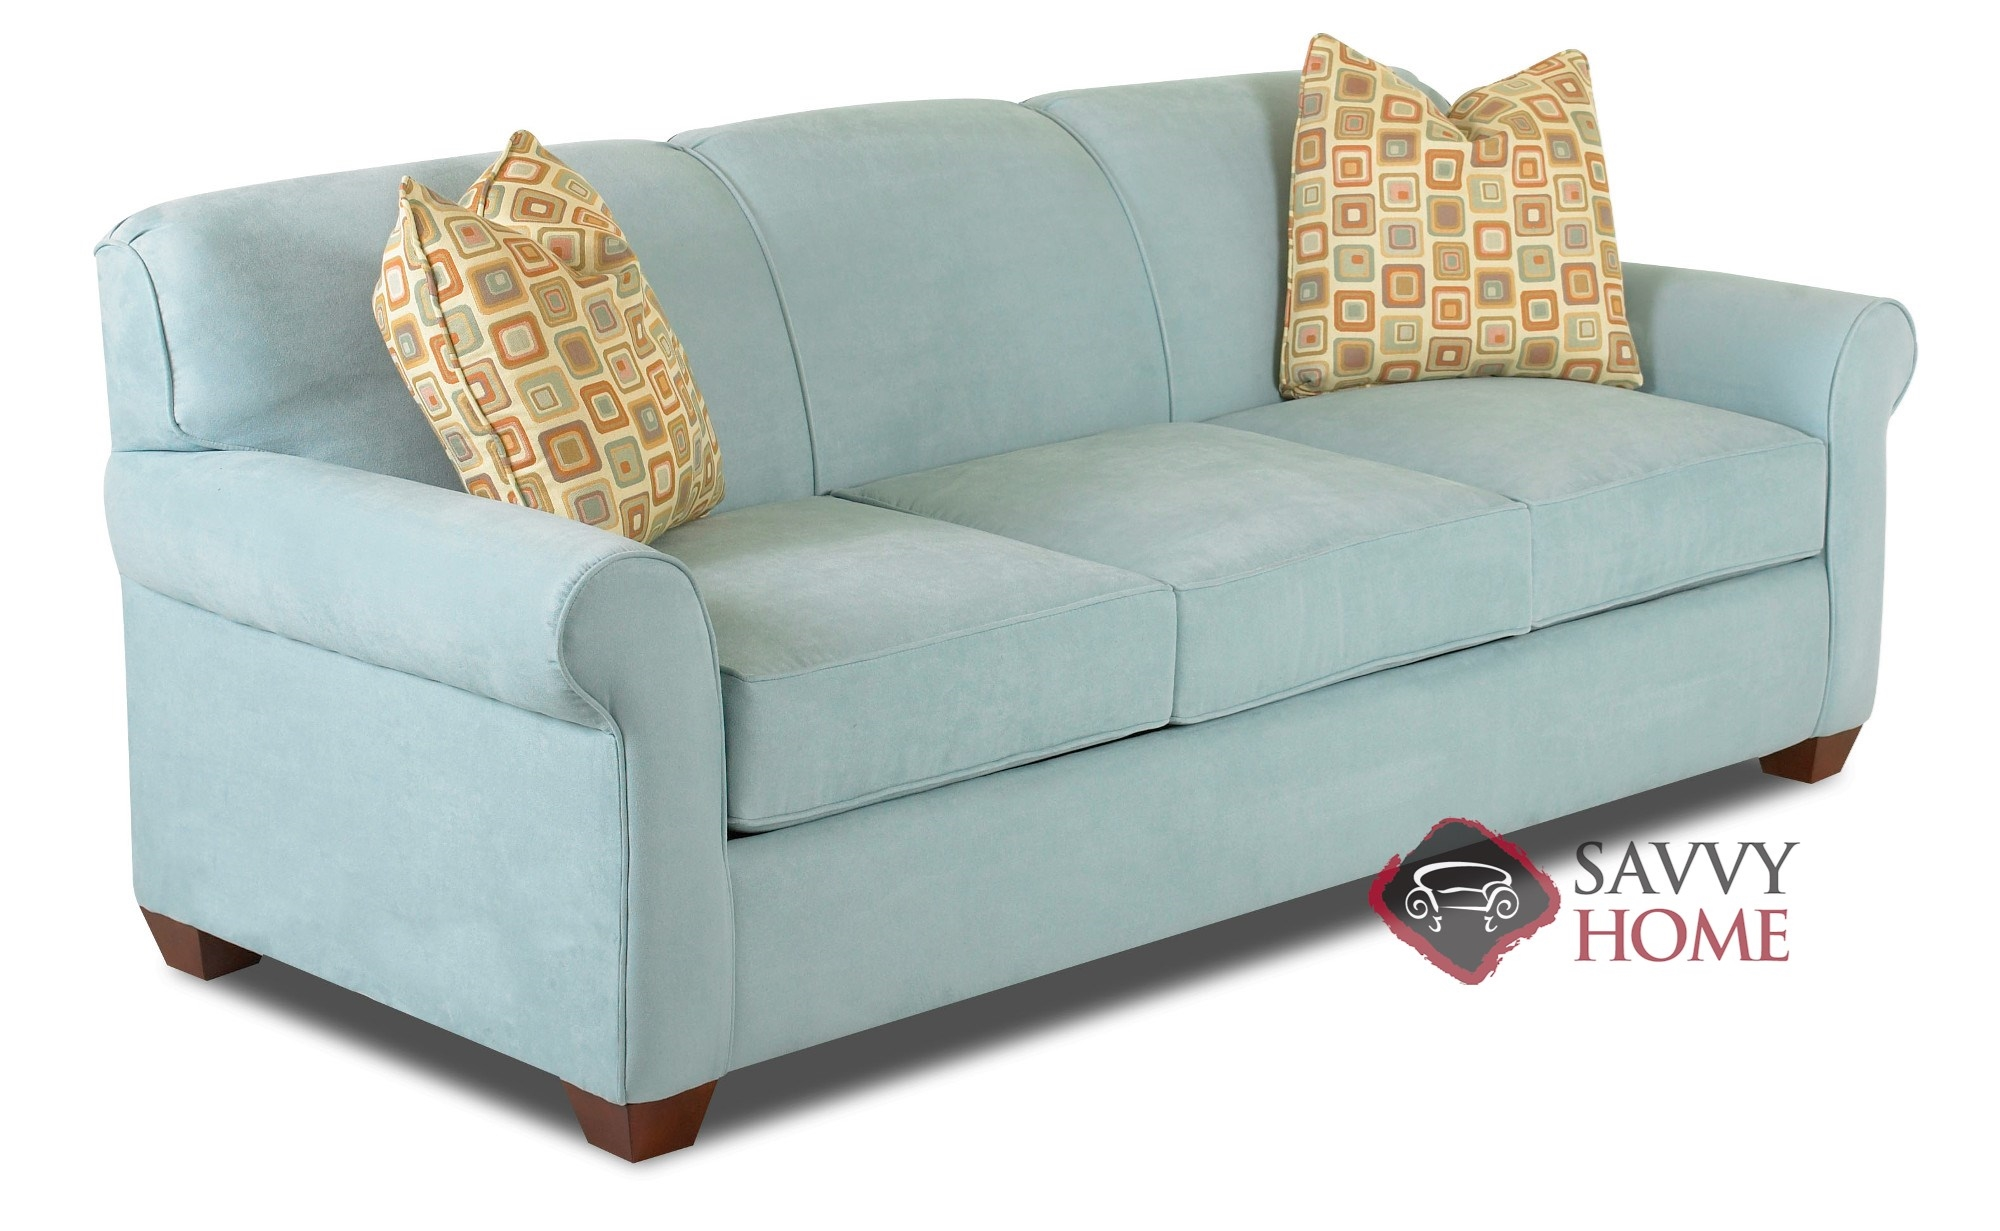 Best Kitchen Gallery: Calgary Fabric Sleeper Sofas Queen By Savvy Is Fully Customizable By of Loveseat Bed  on rachelxblog.com